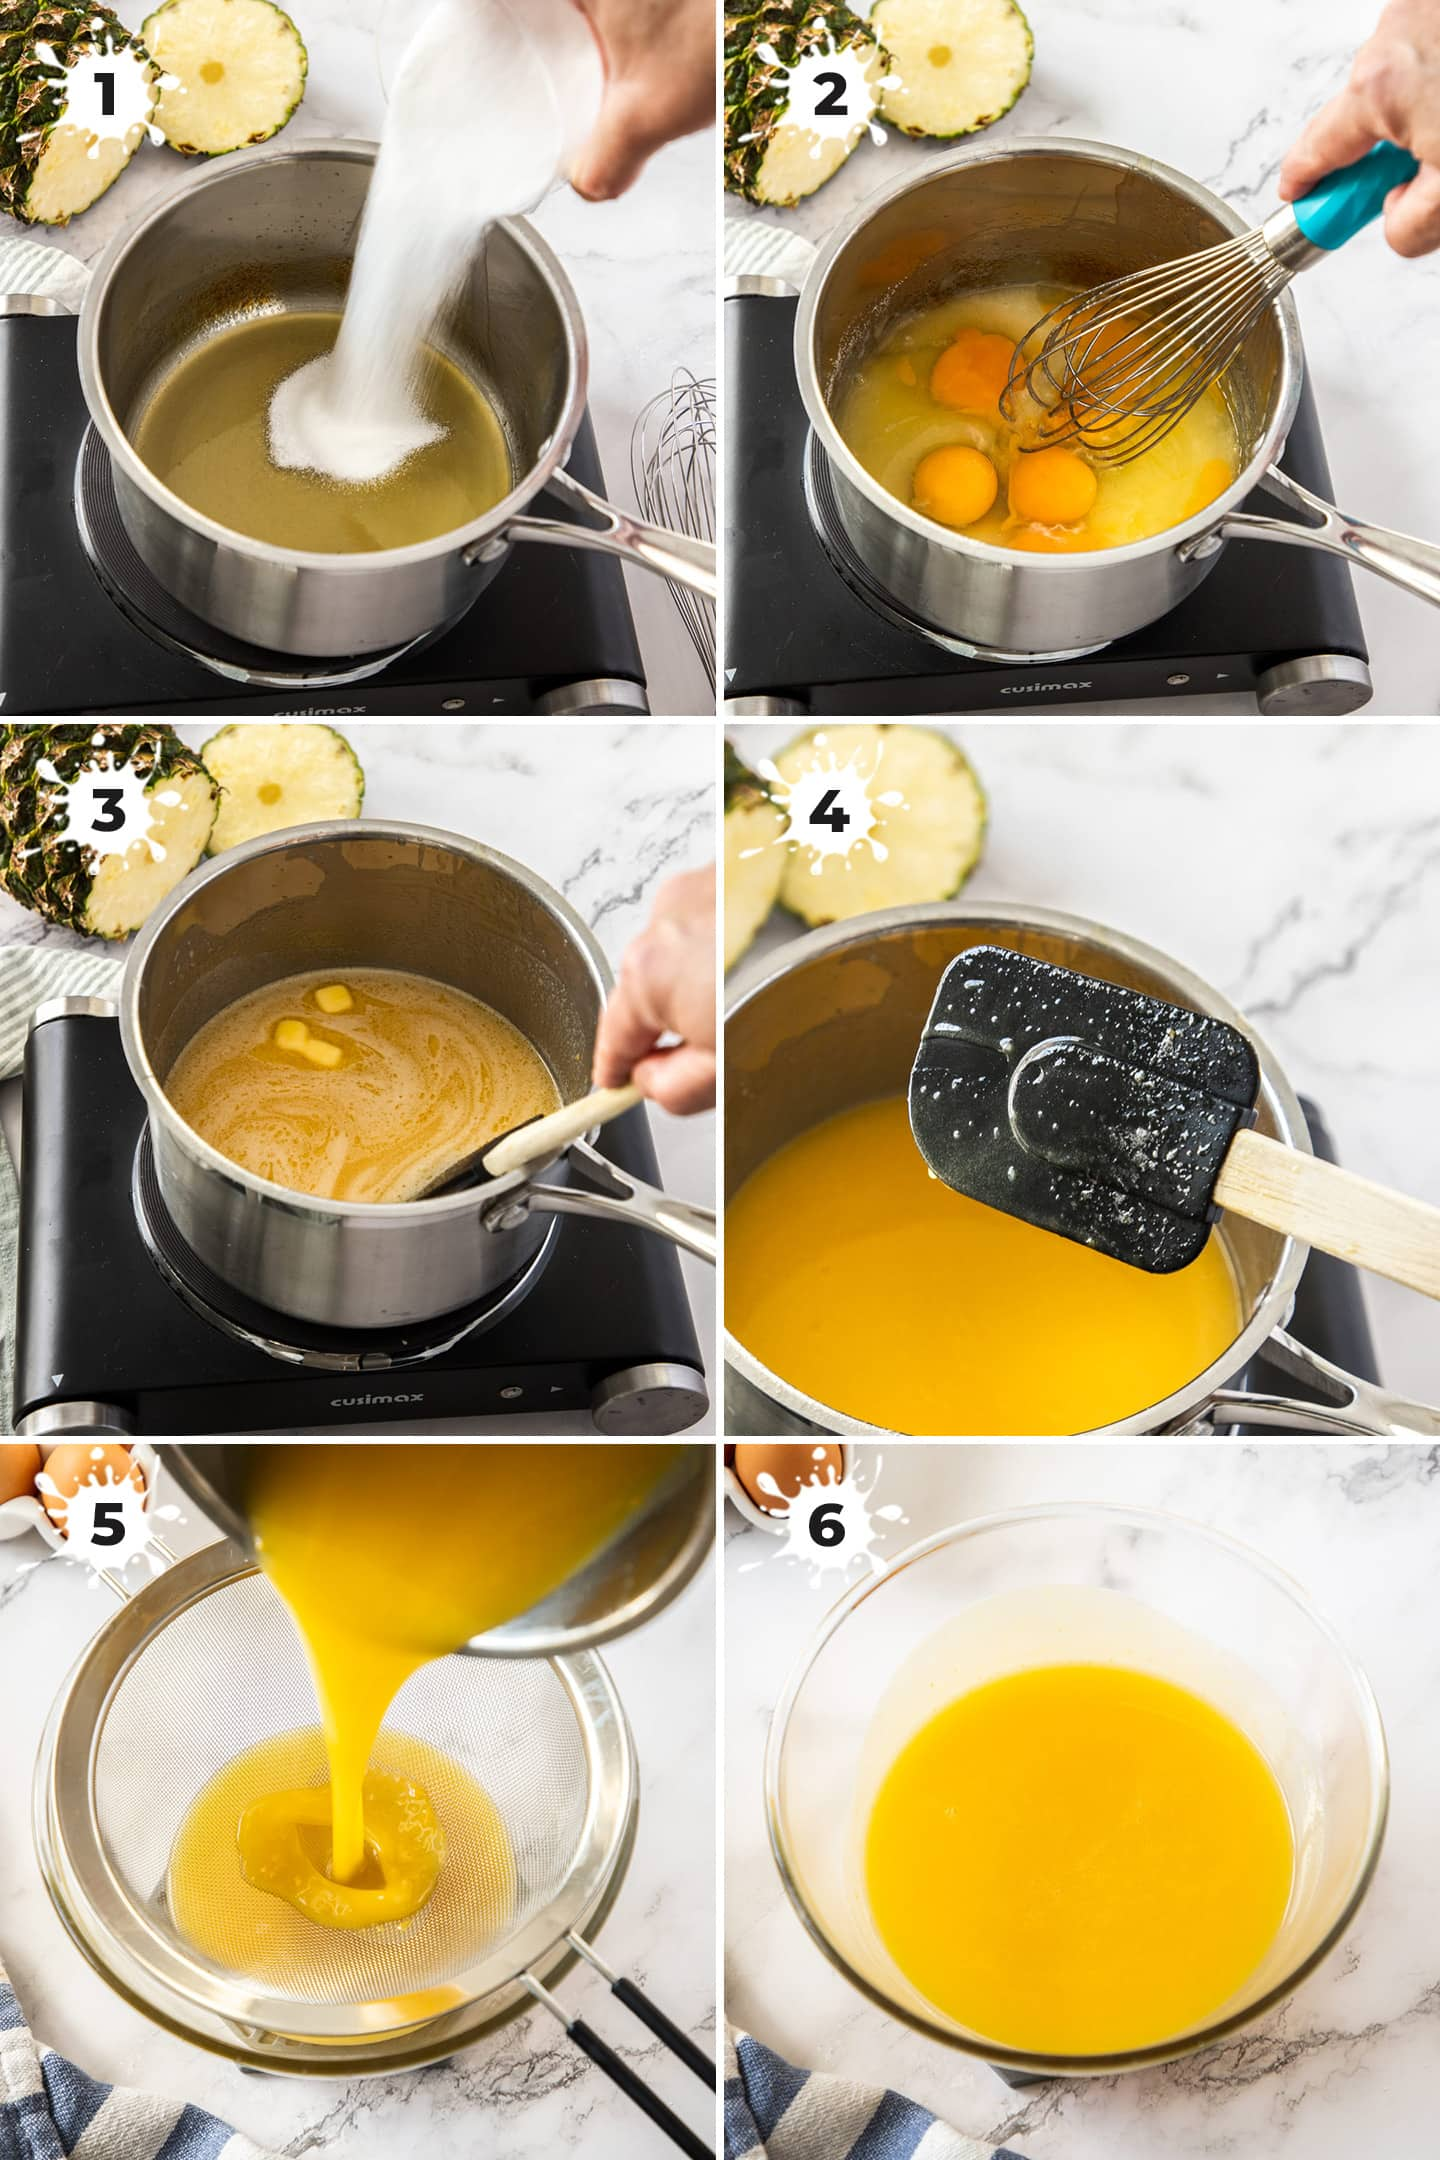 6 images showing how to make pineapple curd.